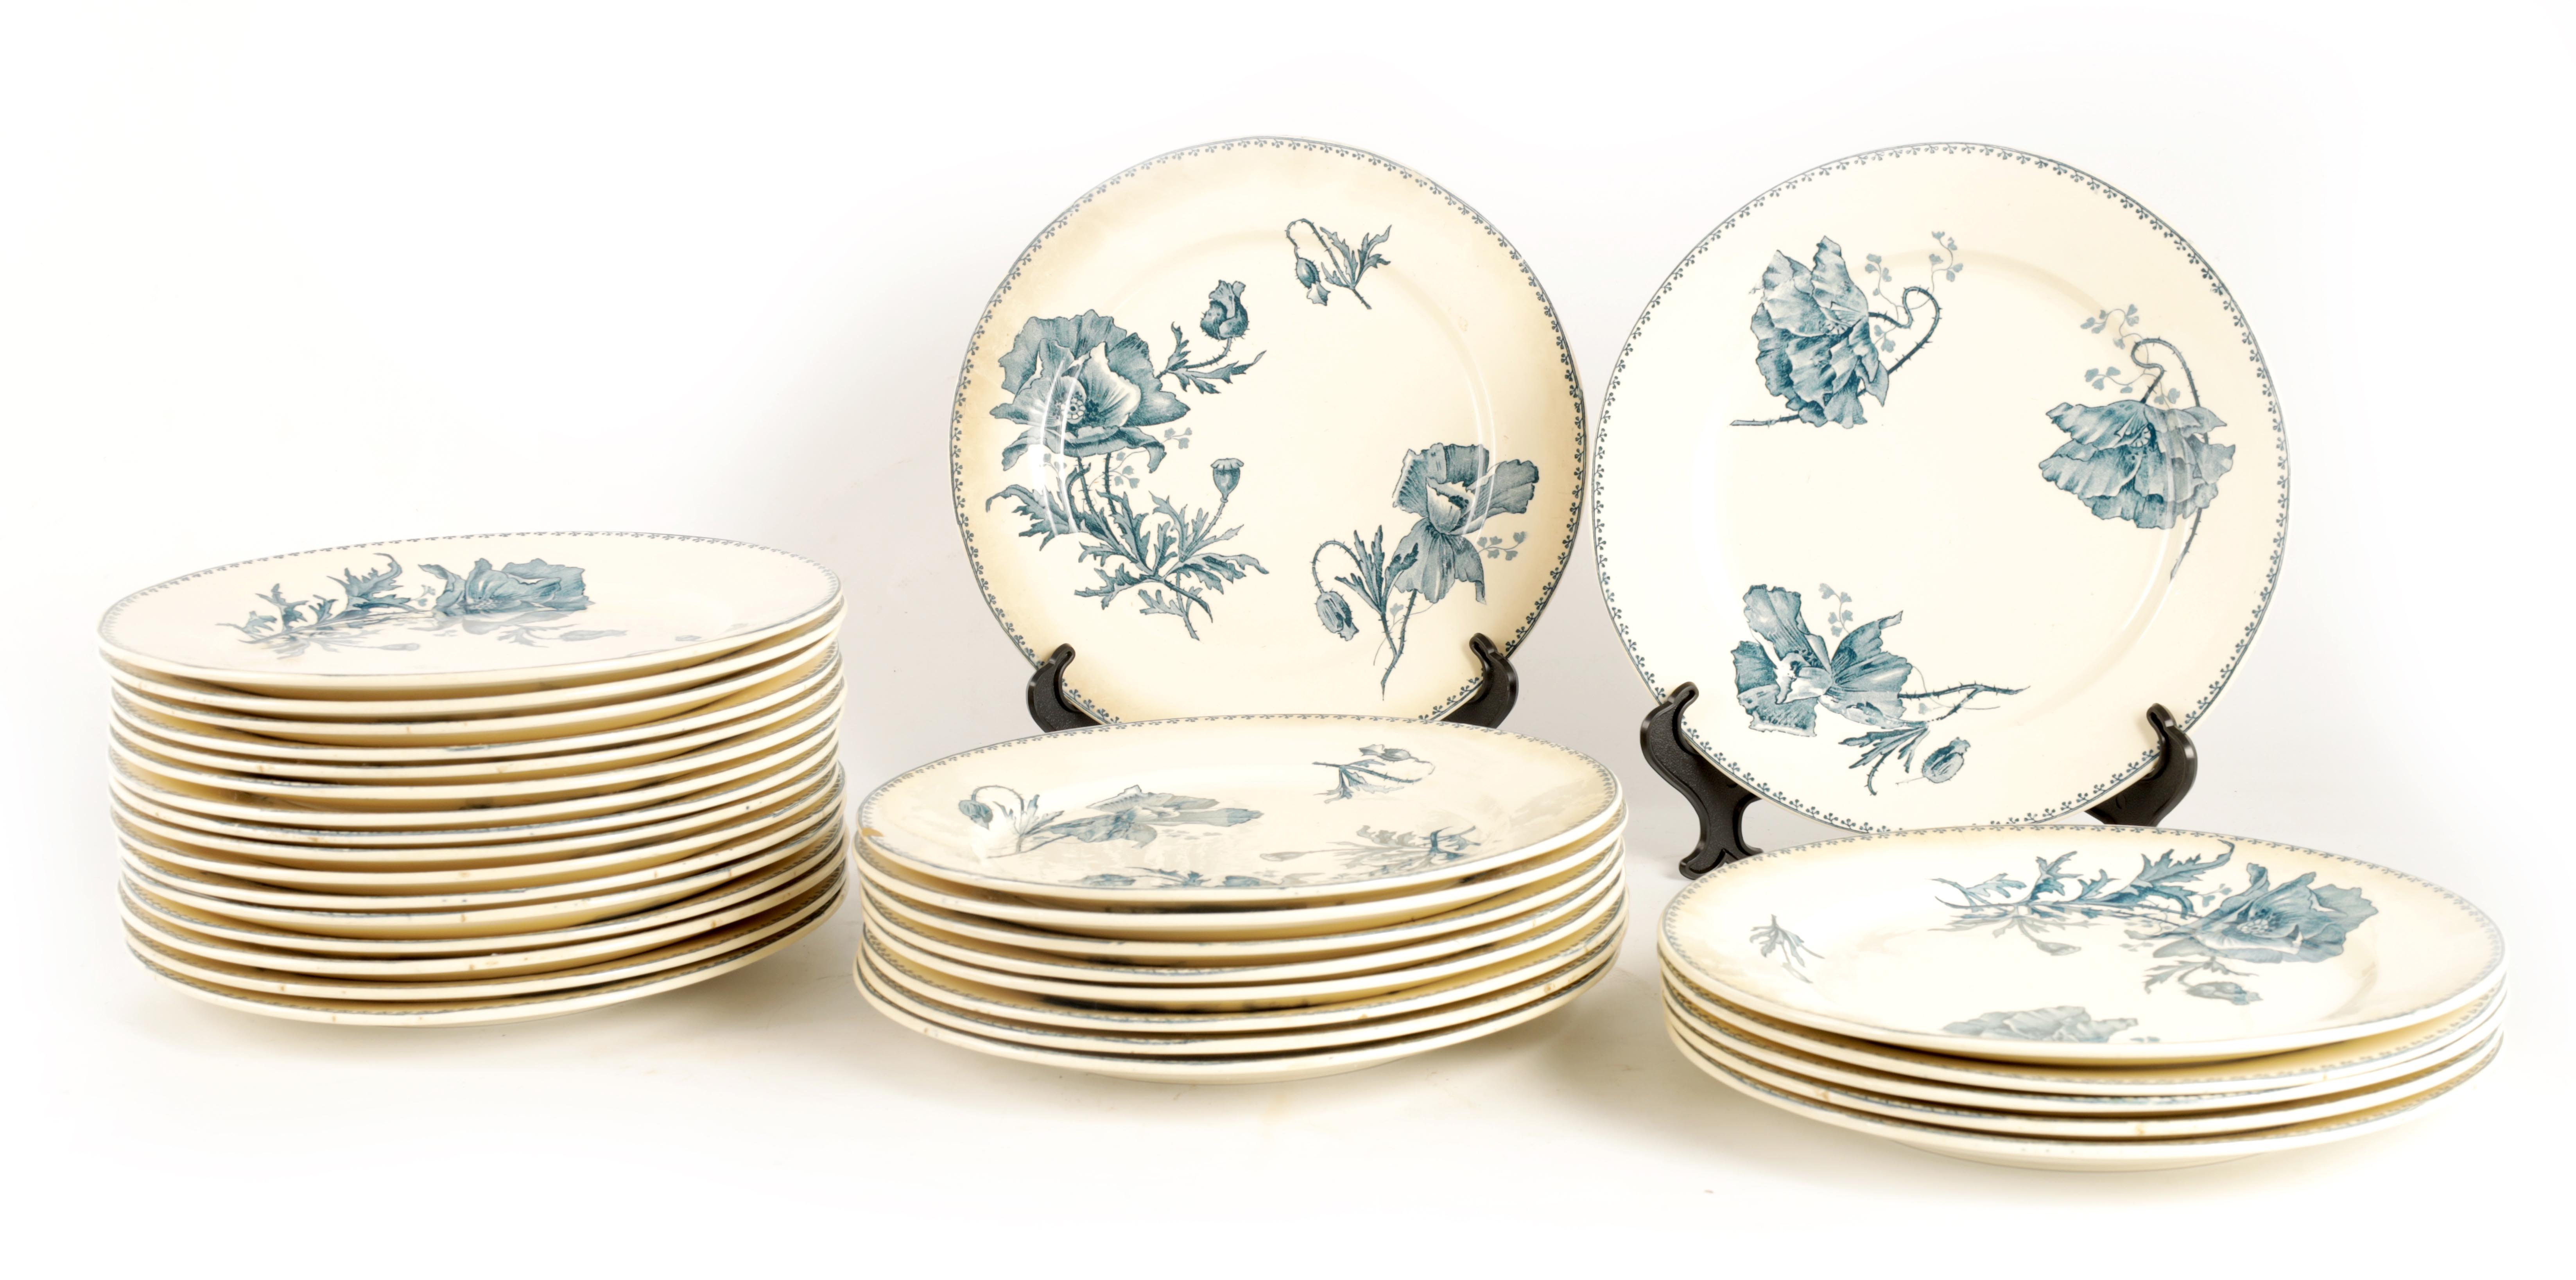 A SET OF 31 20TH CENTURY FRENCH FAIENCE U&C SARREGUEMINES FERIA DINNER PLATES with flower spray